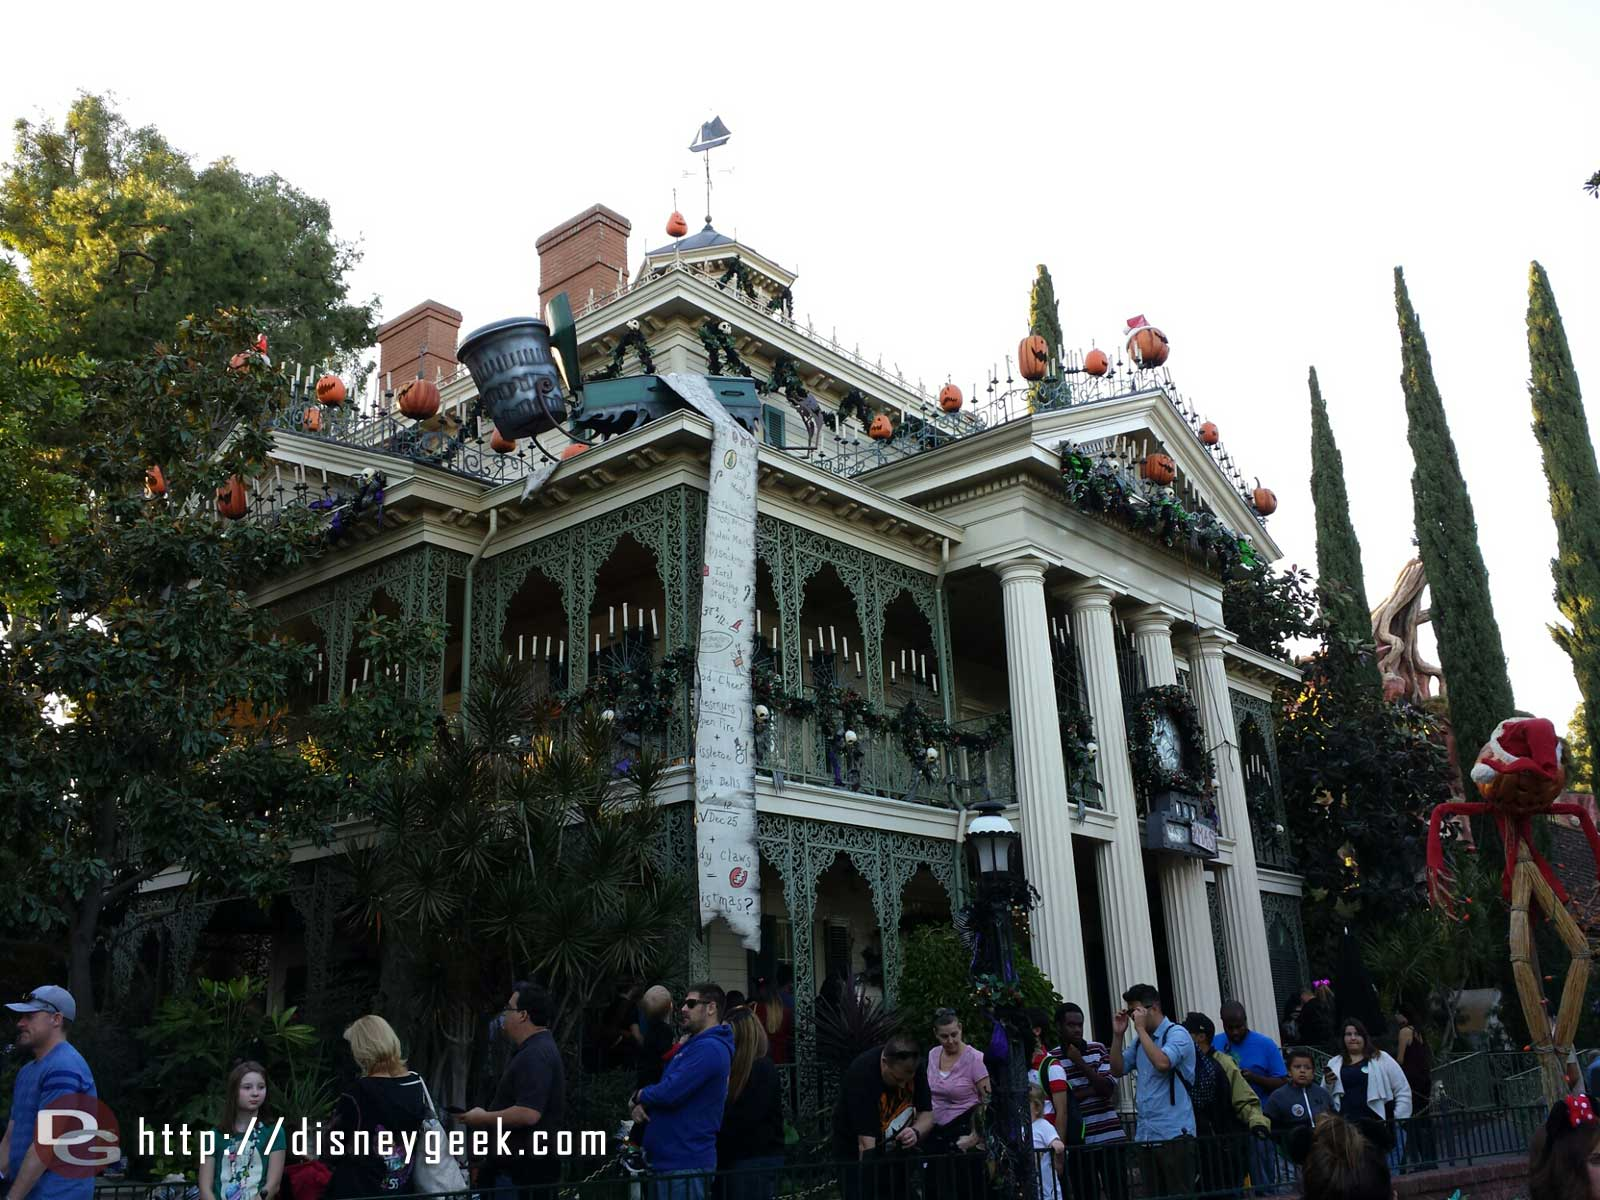 Time to visit the Haunted Mansion Holiday #Disneyland